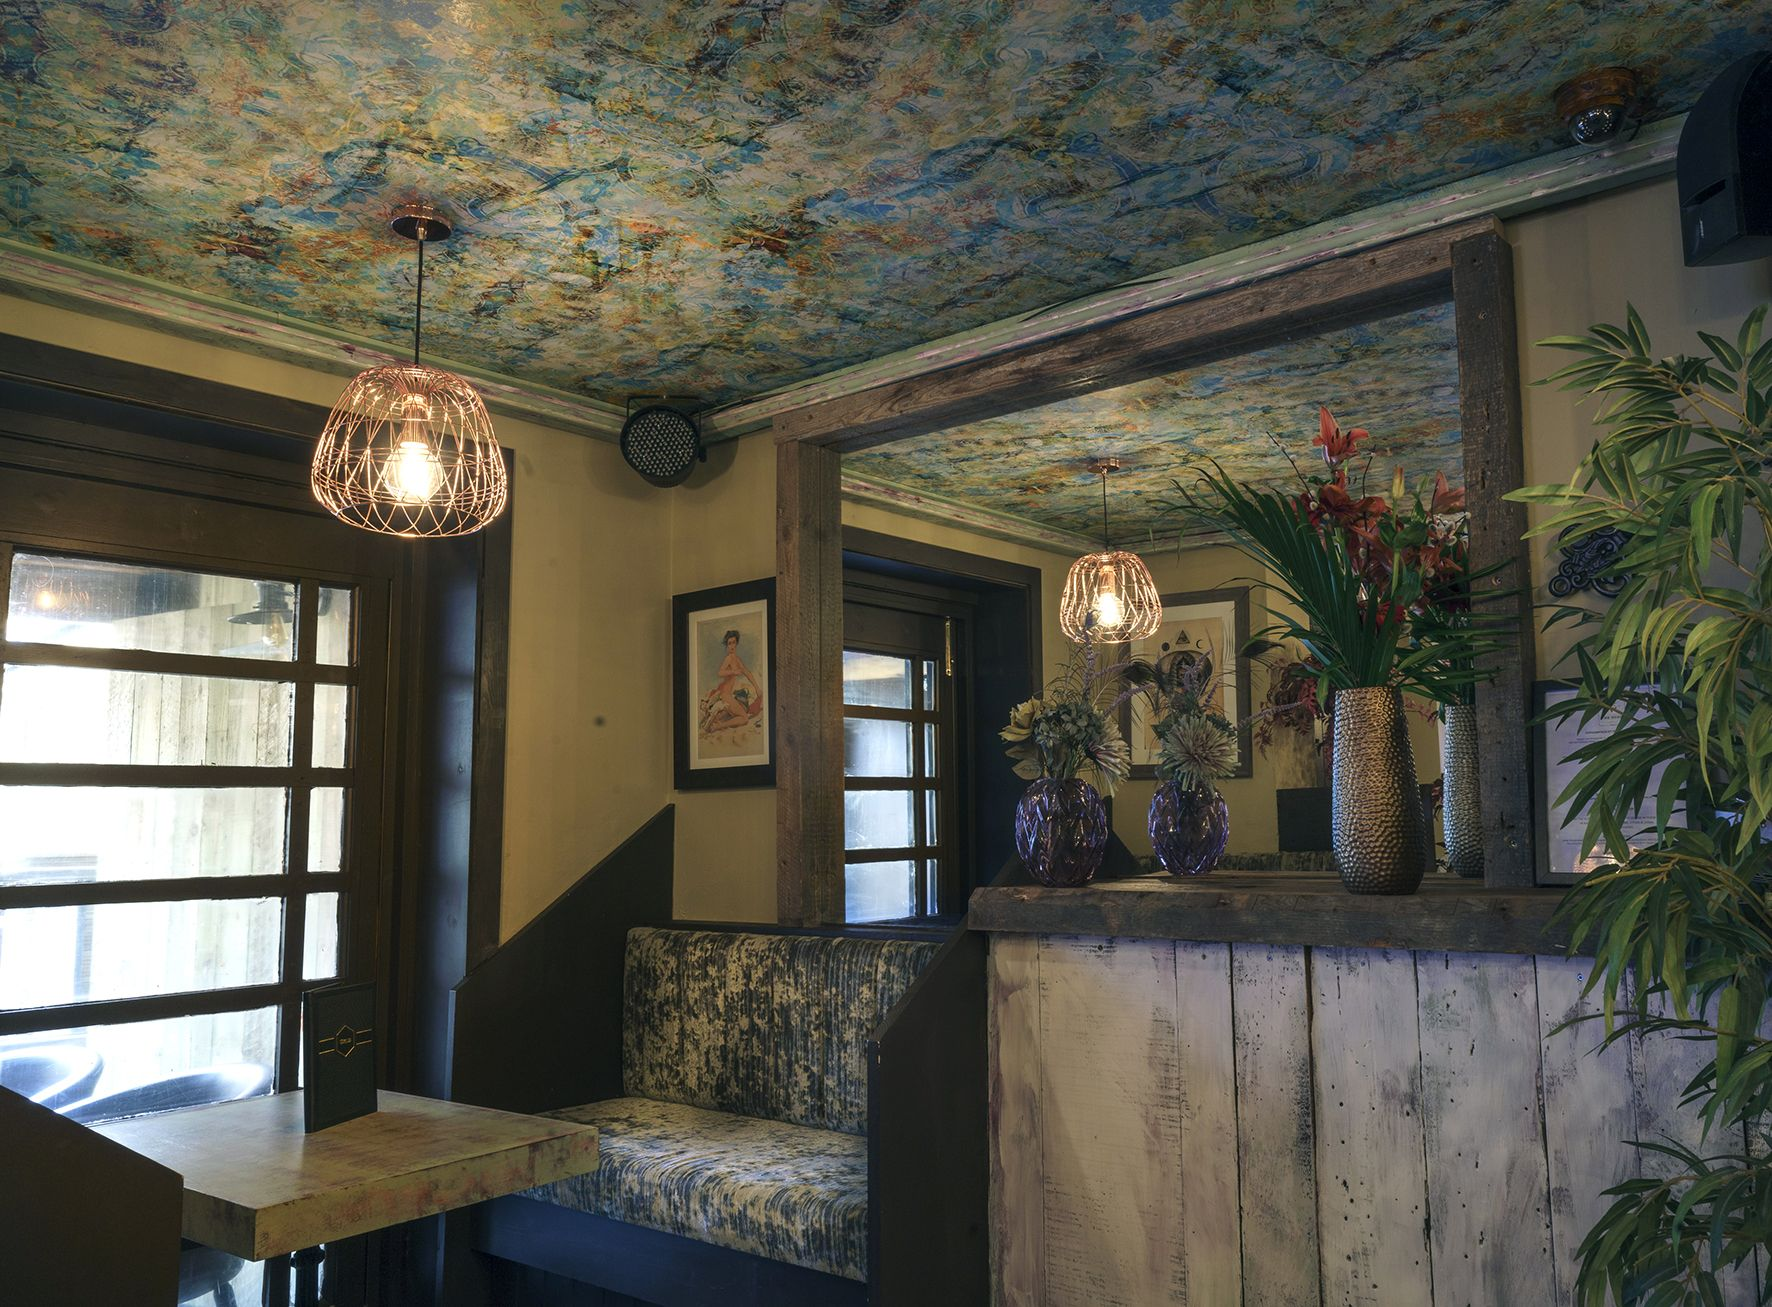 'Birdland Jam' wallpapered ceiling www.blackpop.co.uk